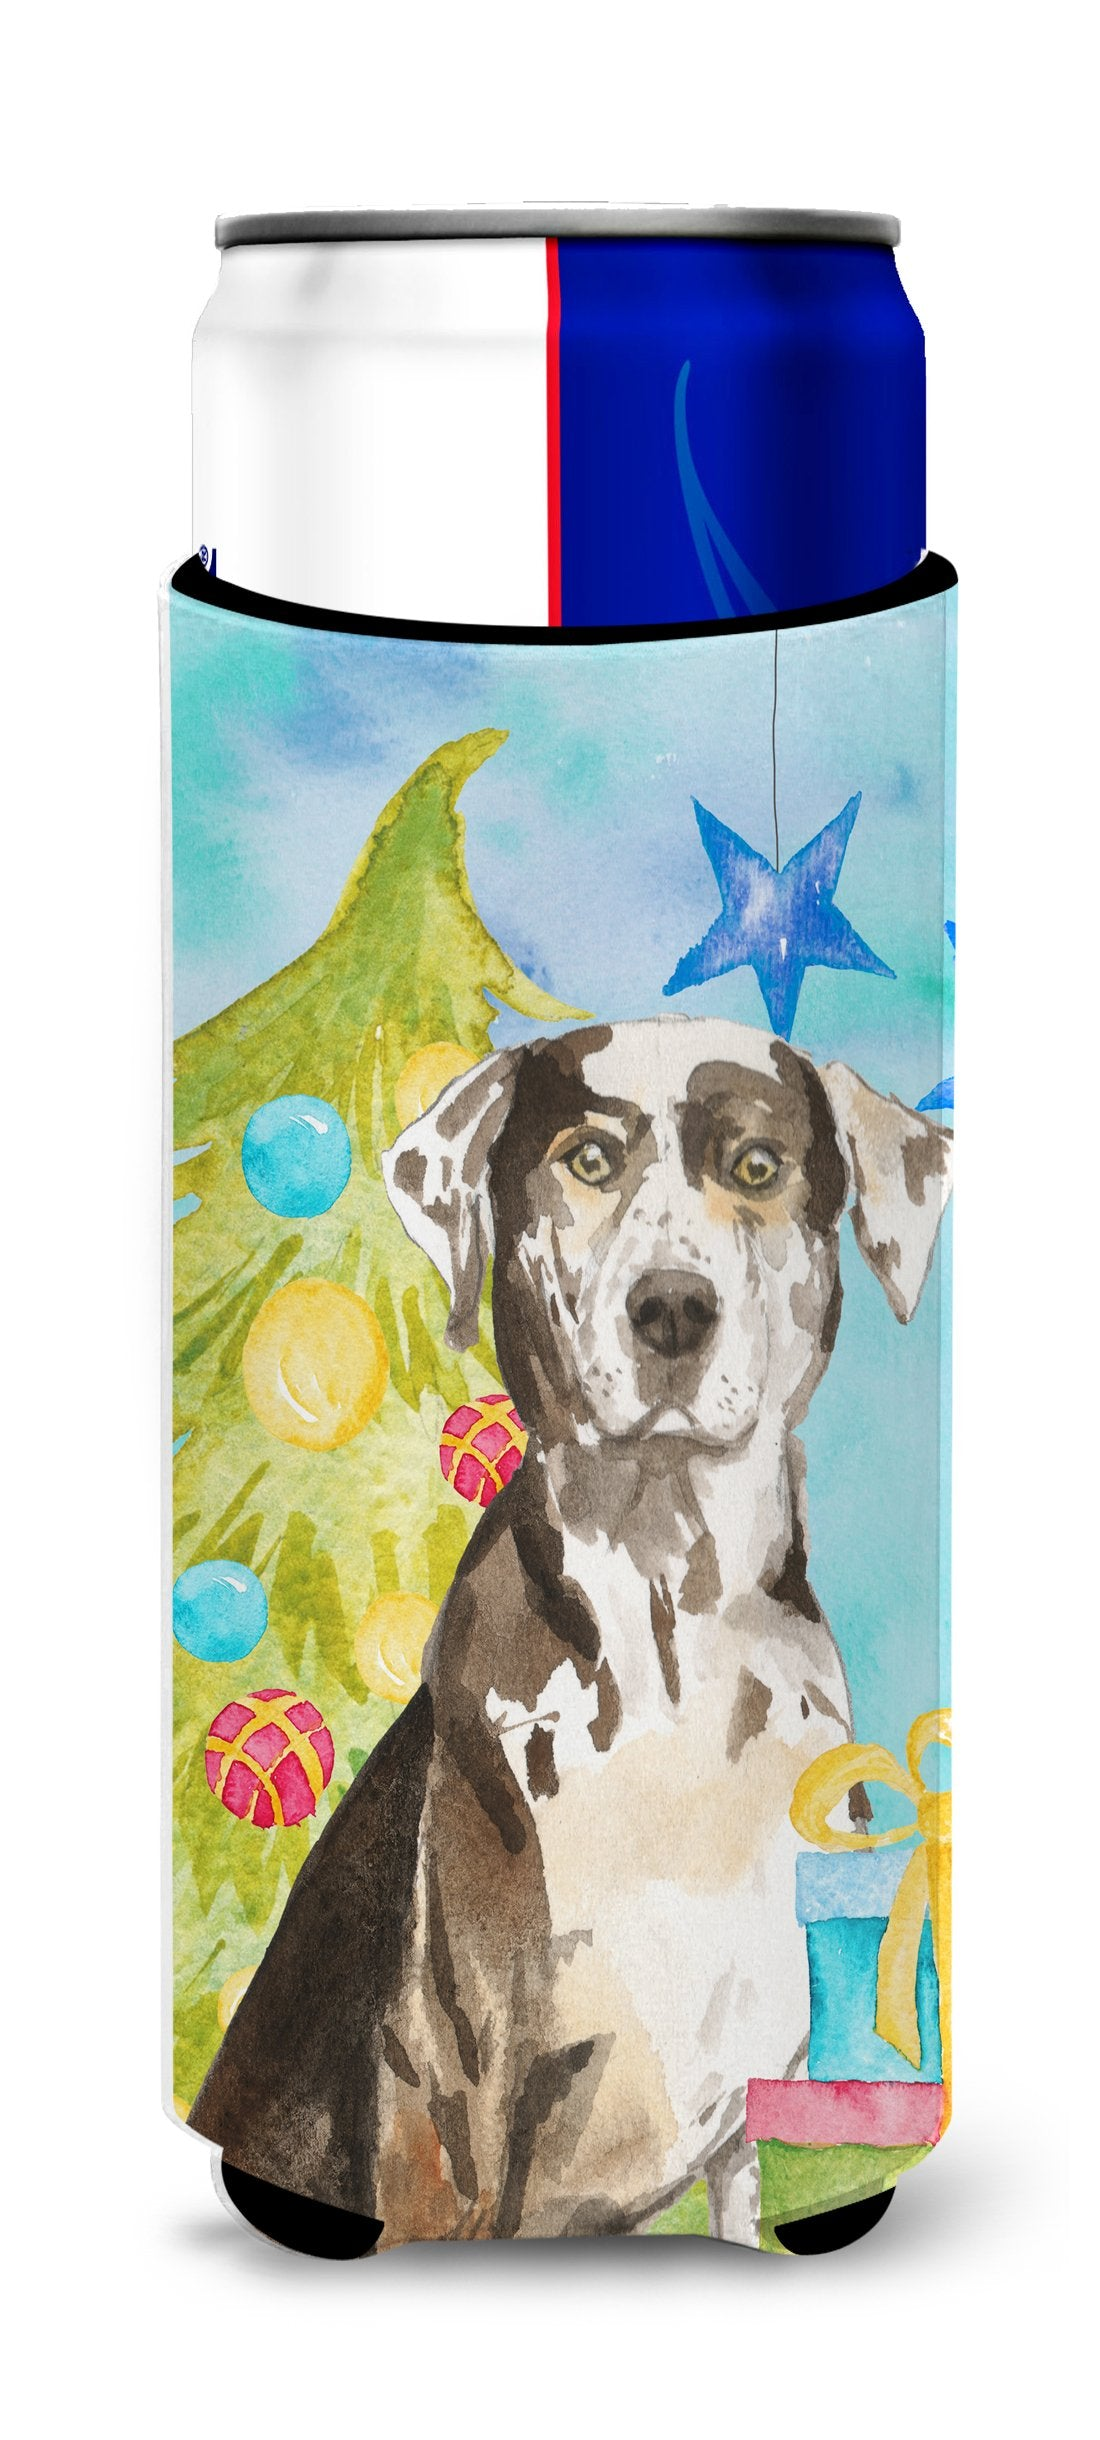 Christmas Tree Catahoula Leopard Dog Michelob Ultra Hugger for slim cans CK1882MUK by Caroline's Treasures